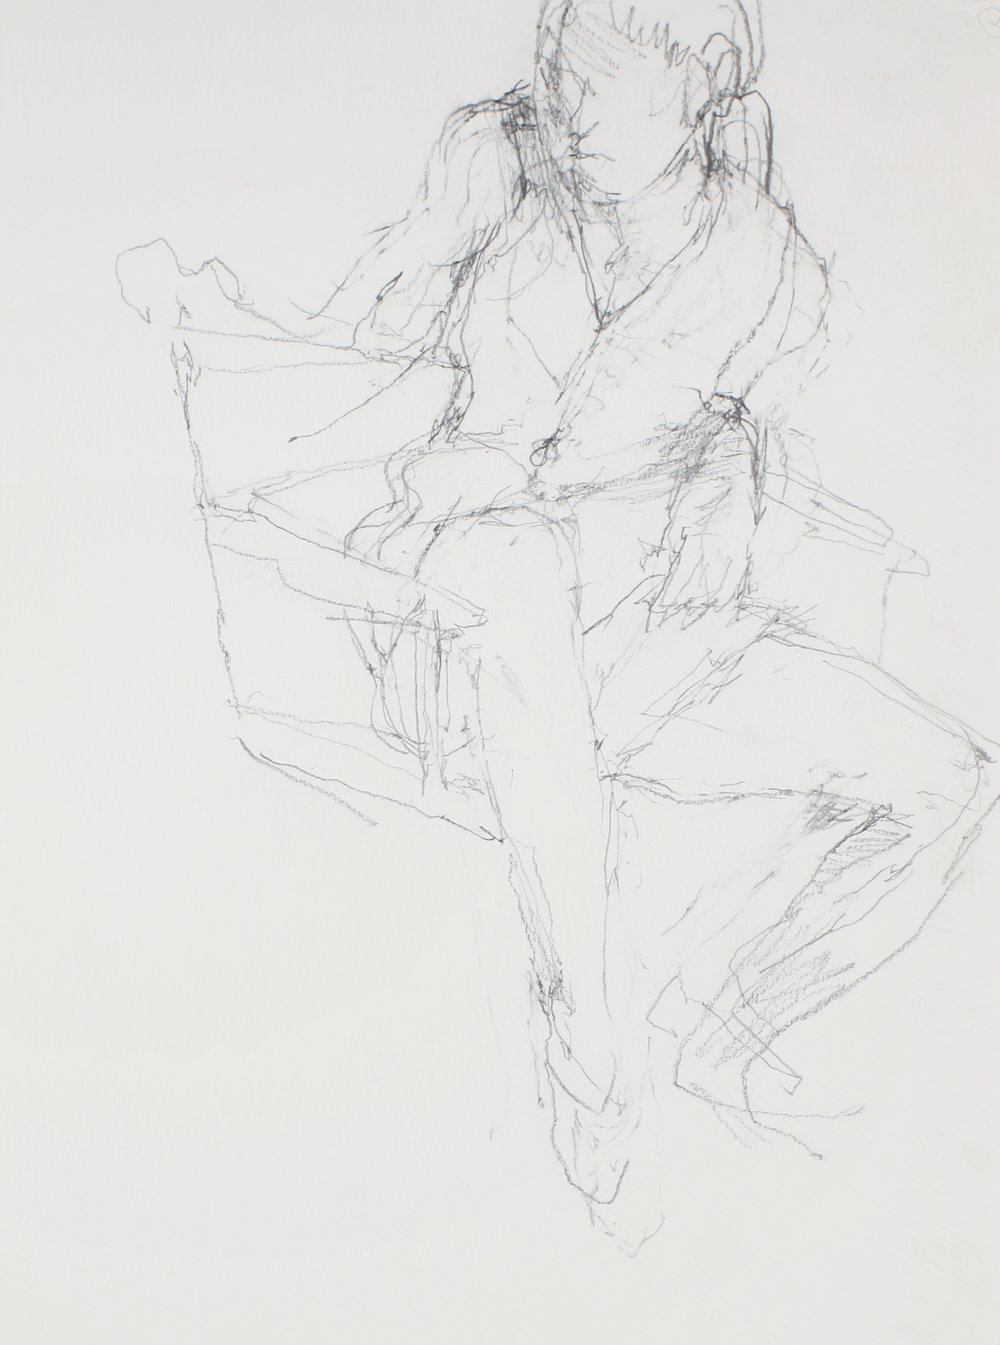 1989_Study_for_Seated_Girl_(Sophie_In_Twisted_Pose)_pencil_on_paper_15x11in_WPF618.jpg